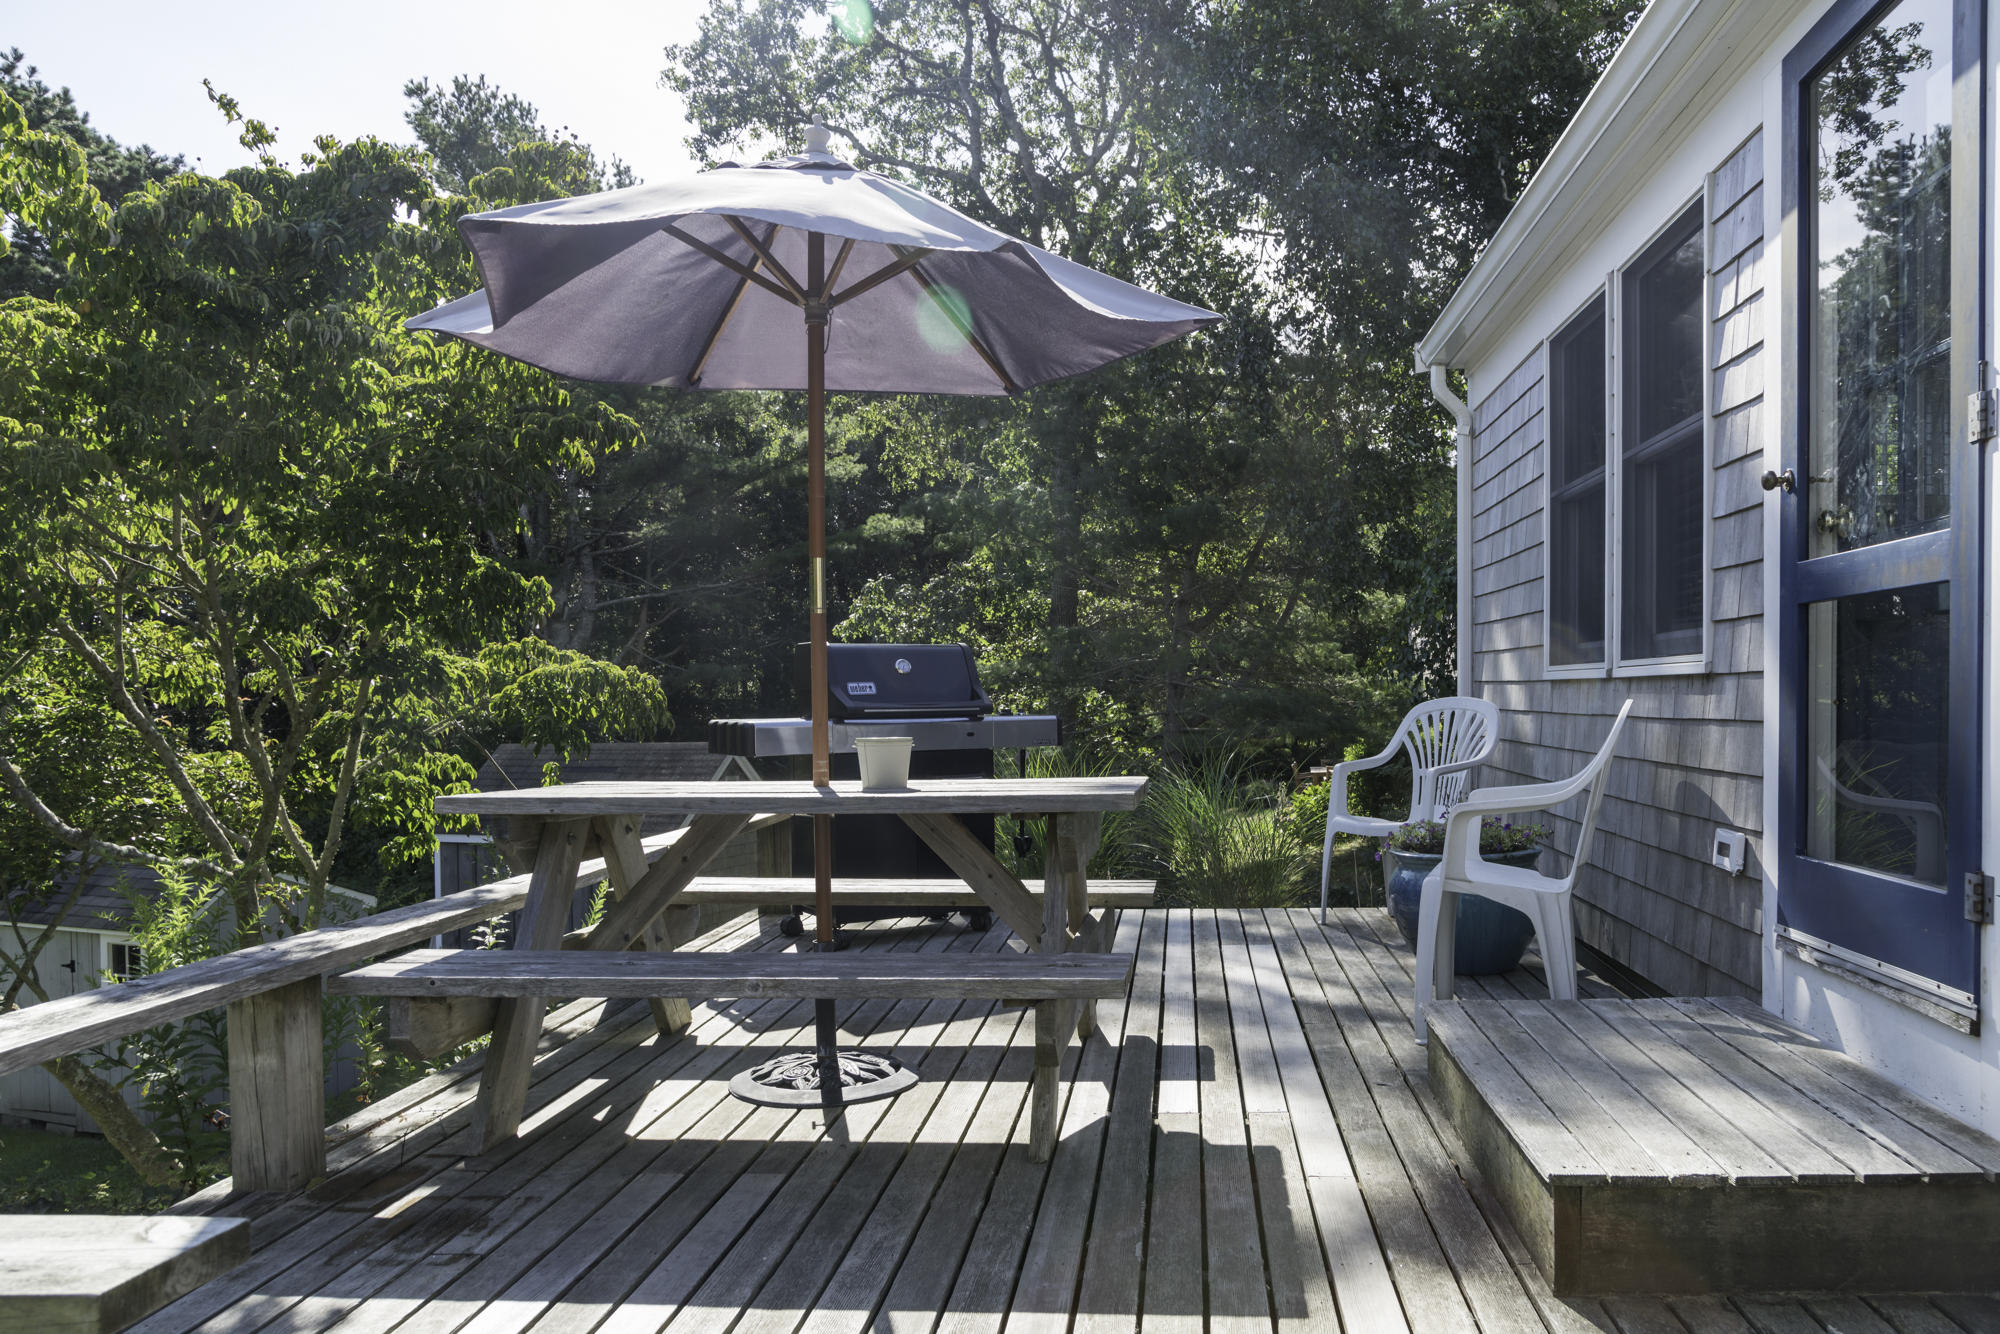 46 Meadow Brook Road, North Chatham MA, 02650 - slide 23